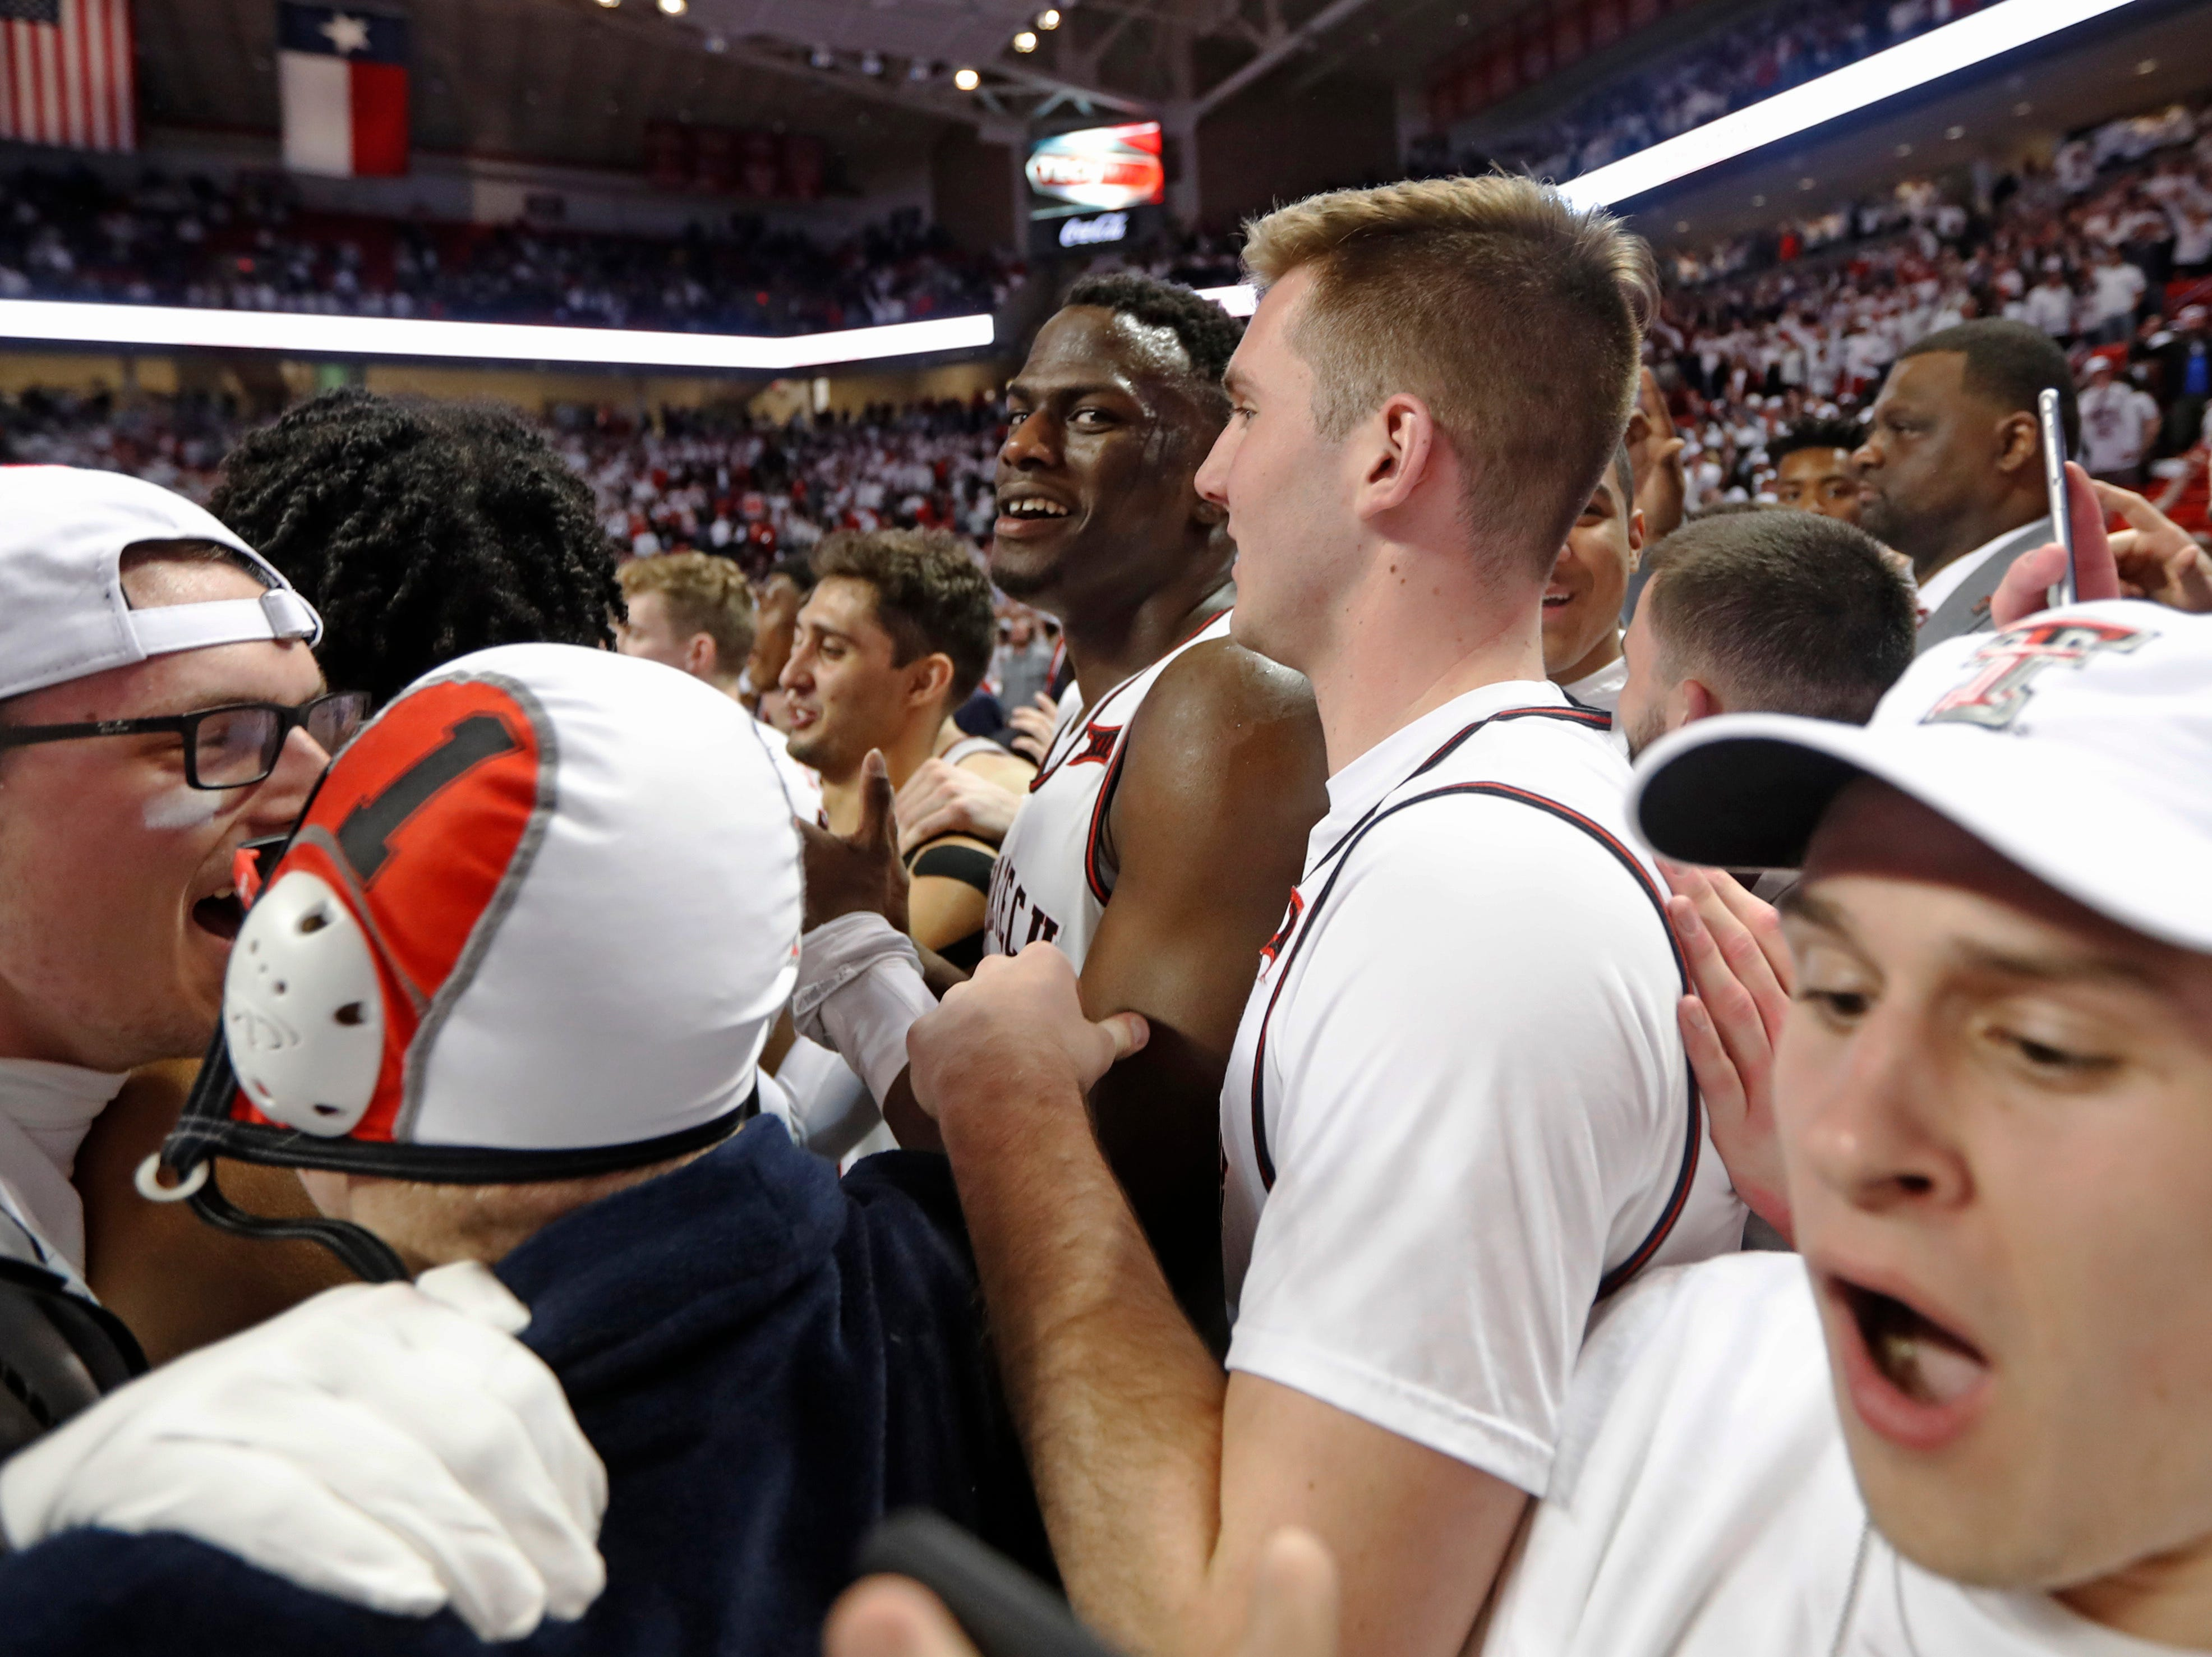 Texas Tech's Norense Odiase (32) and Andrew Sorrells (30) are surrounded by fans running onto the court after an NCAA college basketball game against Kansas, Saturday, Feb. 23, 2019, in Lubbock, Texas. Texas Tech won 91-62 (AP Photo/Brad Tollefson)